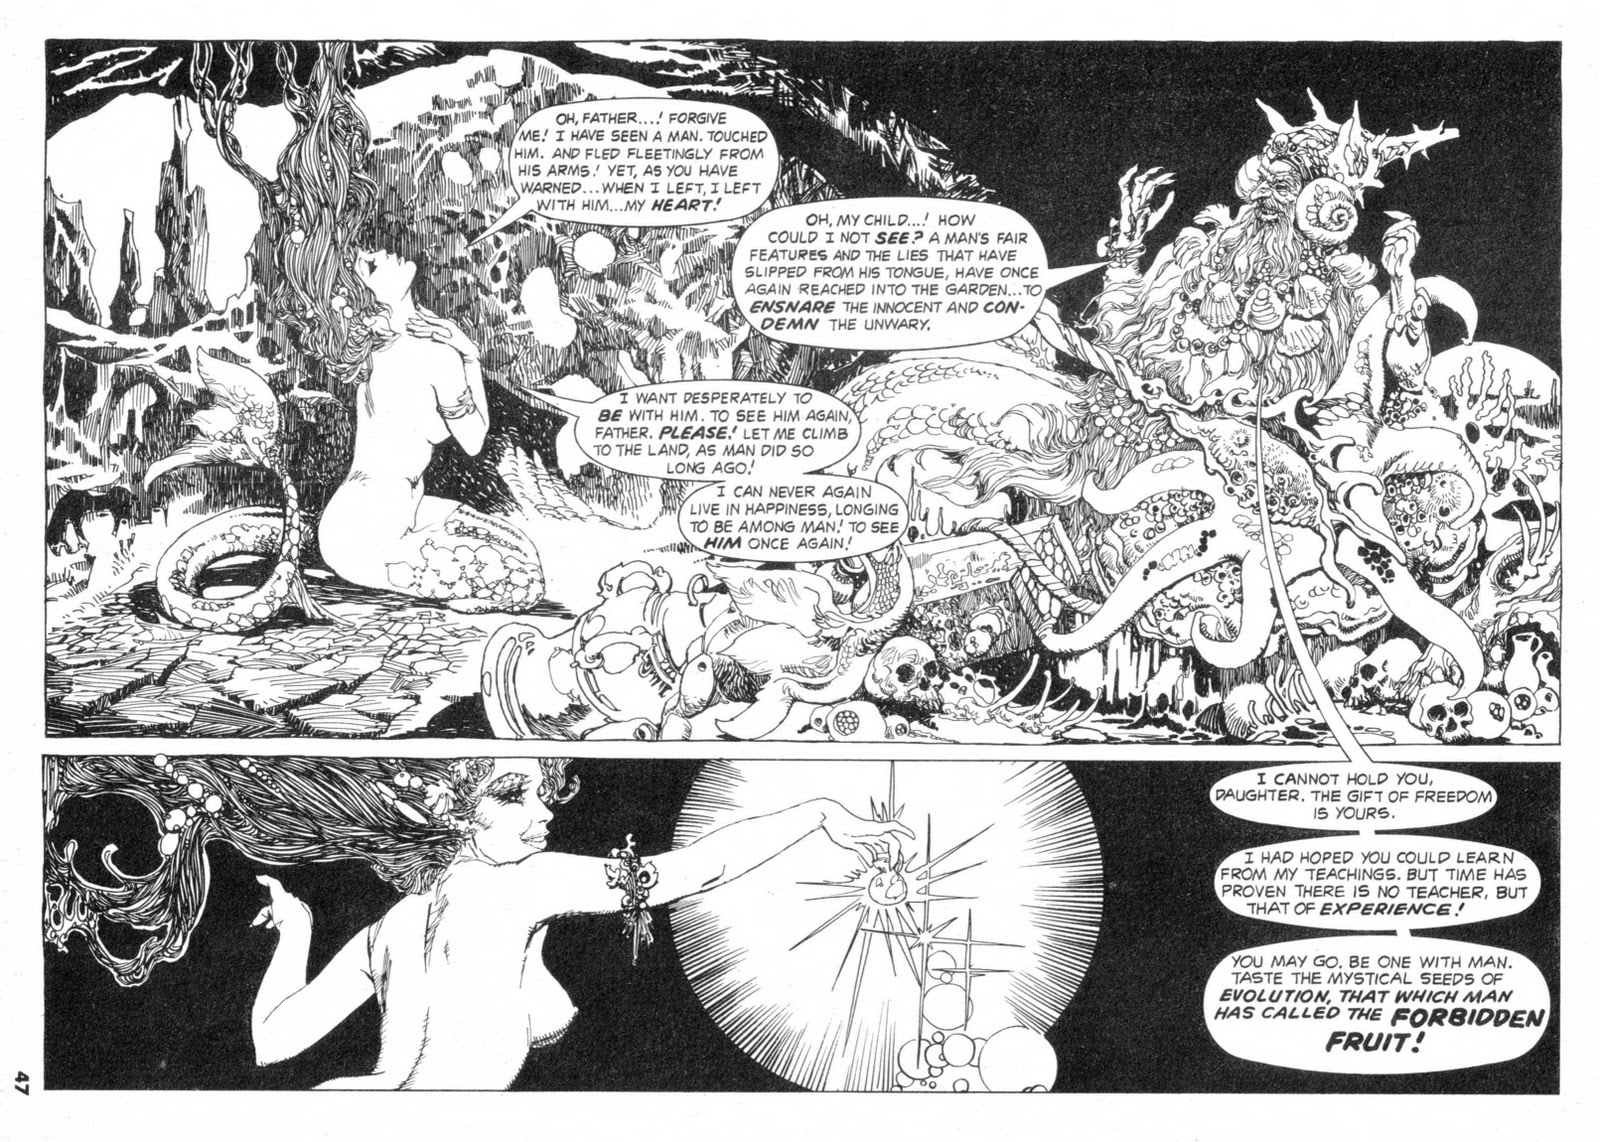 683f36983 All of the Spanish artists employed by the Warren magazines during the 70s  were skilled draftsmen. Esteban Maroto's pen-and-ink work, in particular,  ...